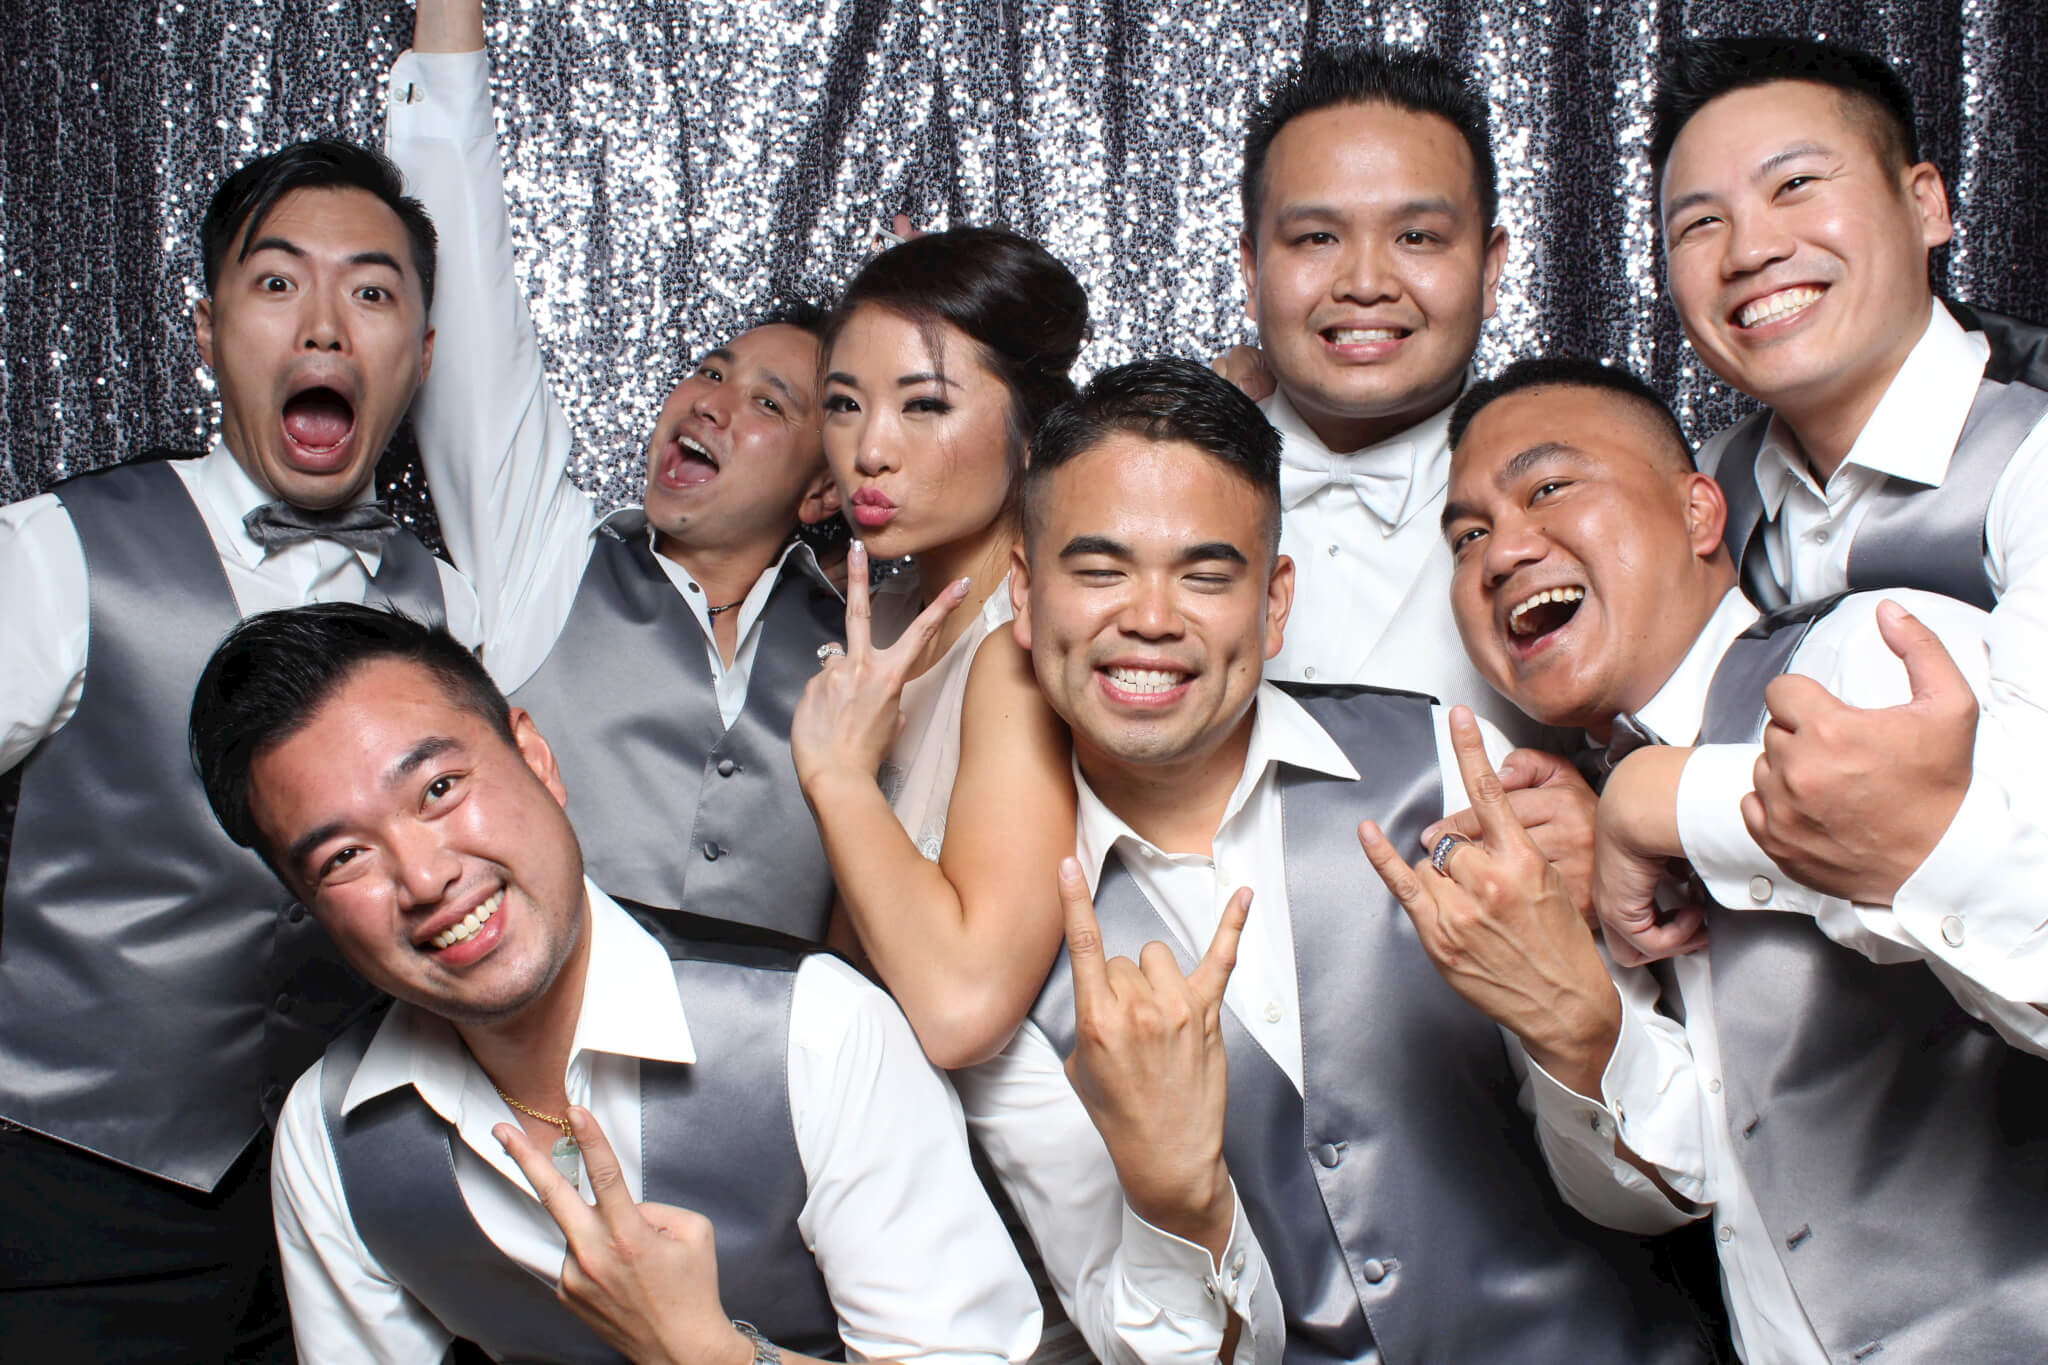 Asian family wedding photo booth rental San Jose